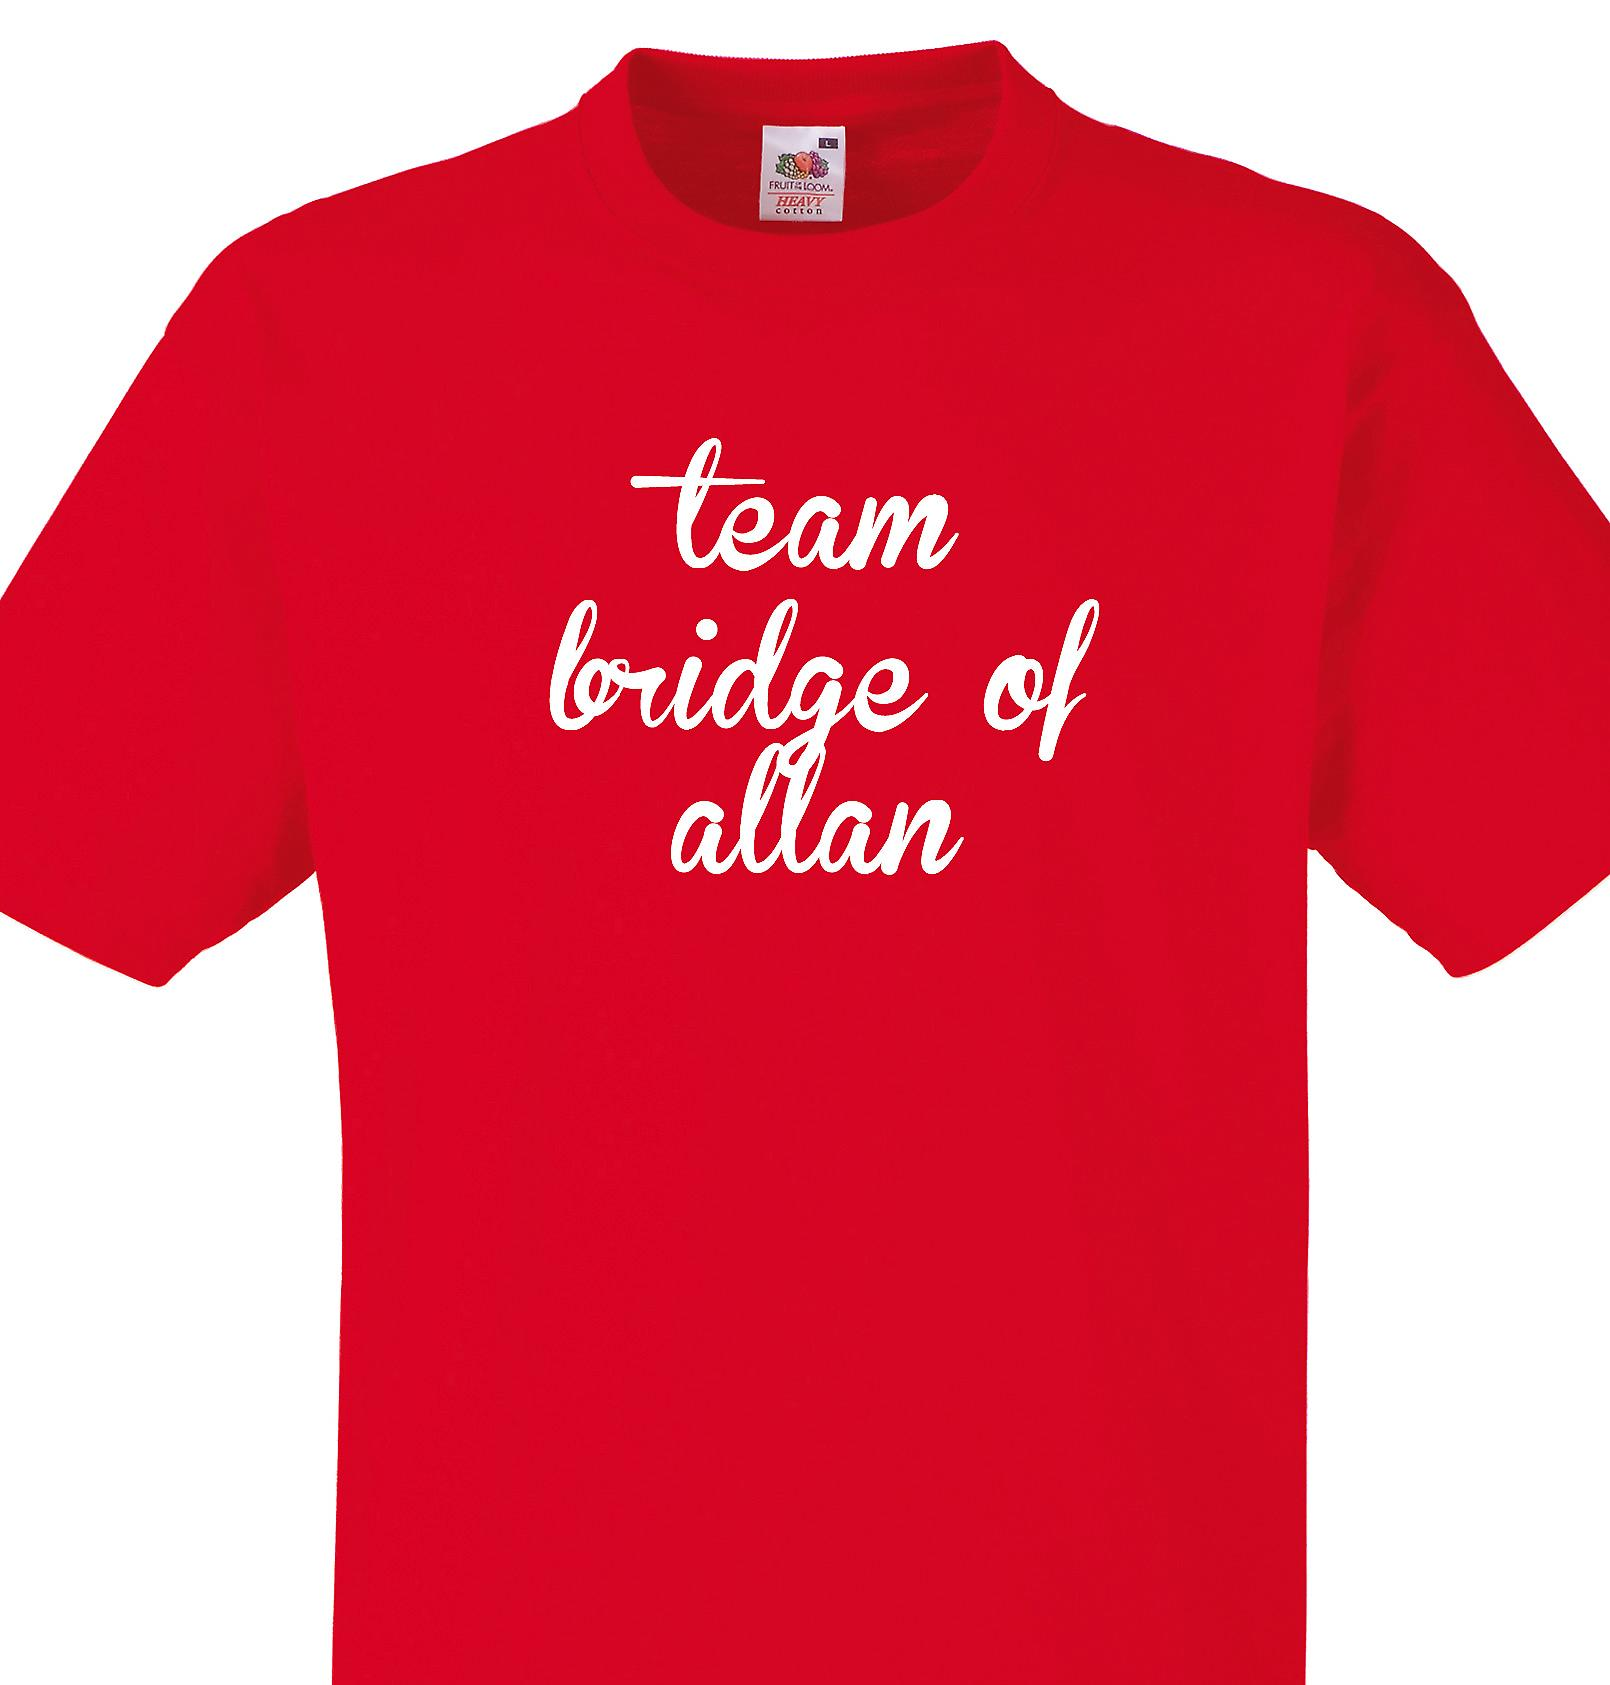 Team Bridge of allan röd T-tröja